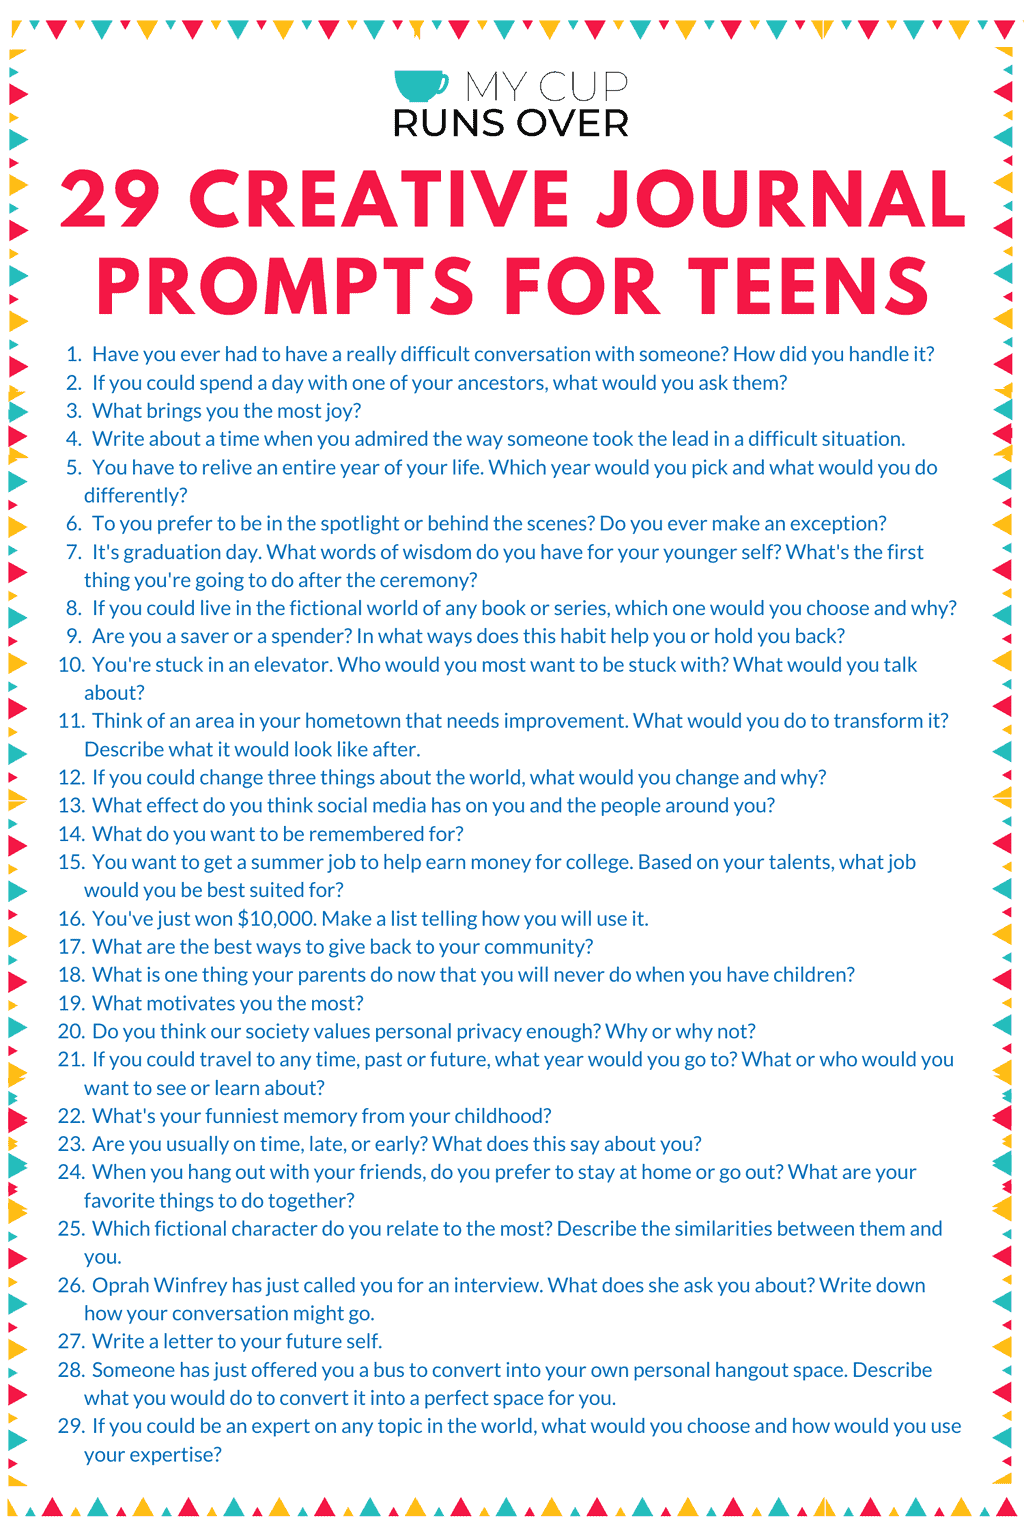 29 Creative Journal Prompts For Teens Fun Prompts To Get